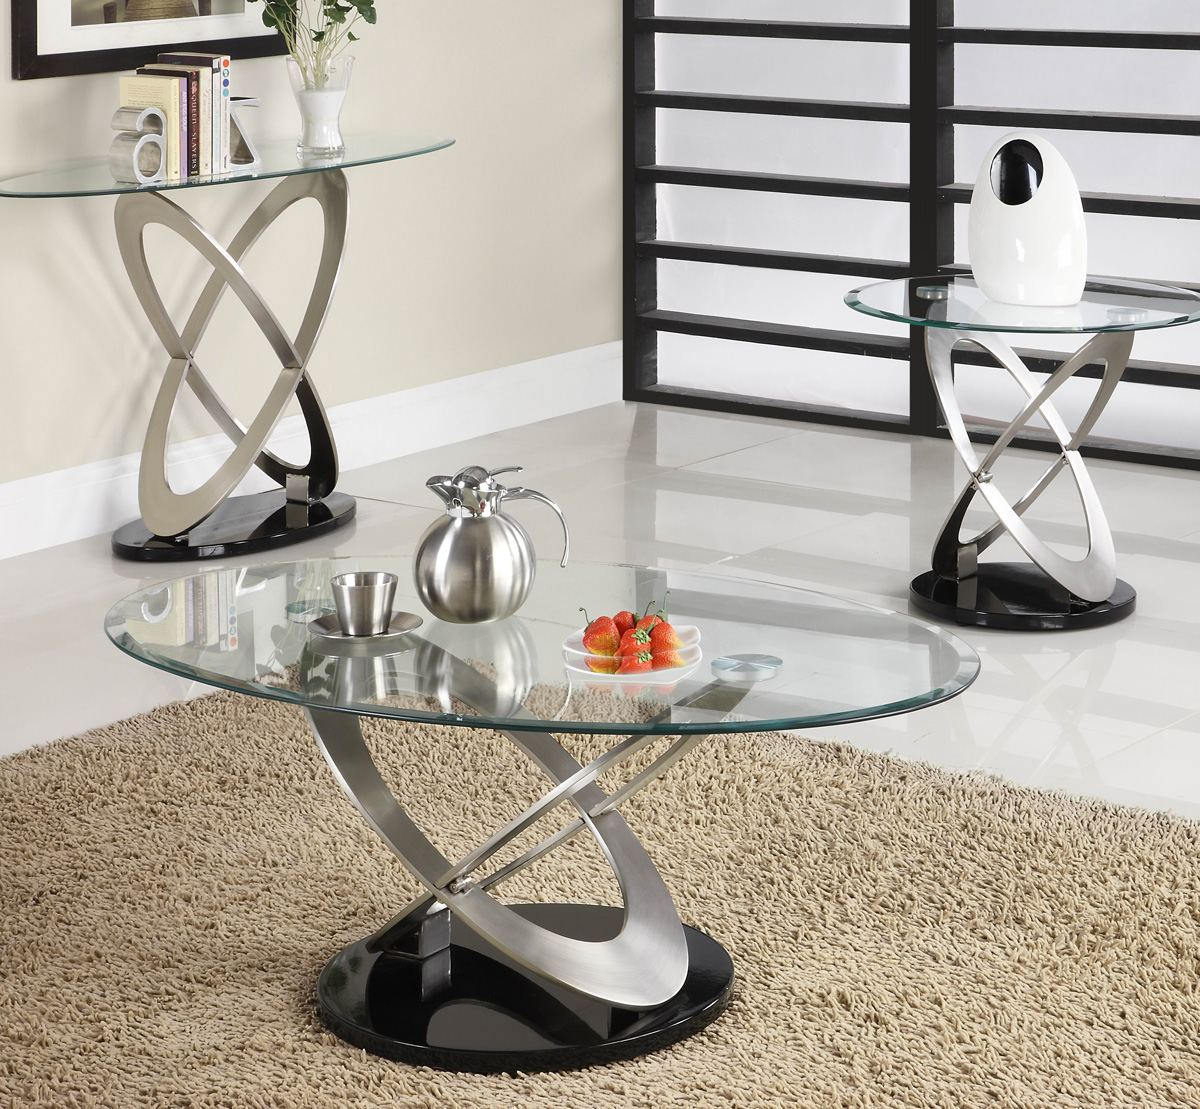 home sense bedding probably outrageous great piece set coffee table magnificent living room end tables espresso round gold mirrored side ashley bedroom collection half moon